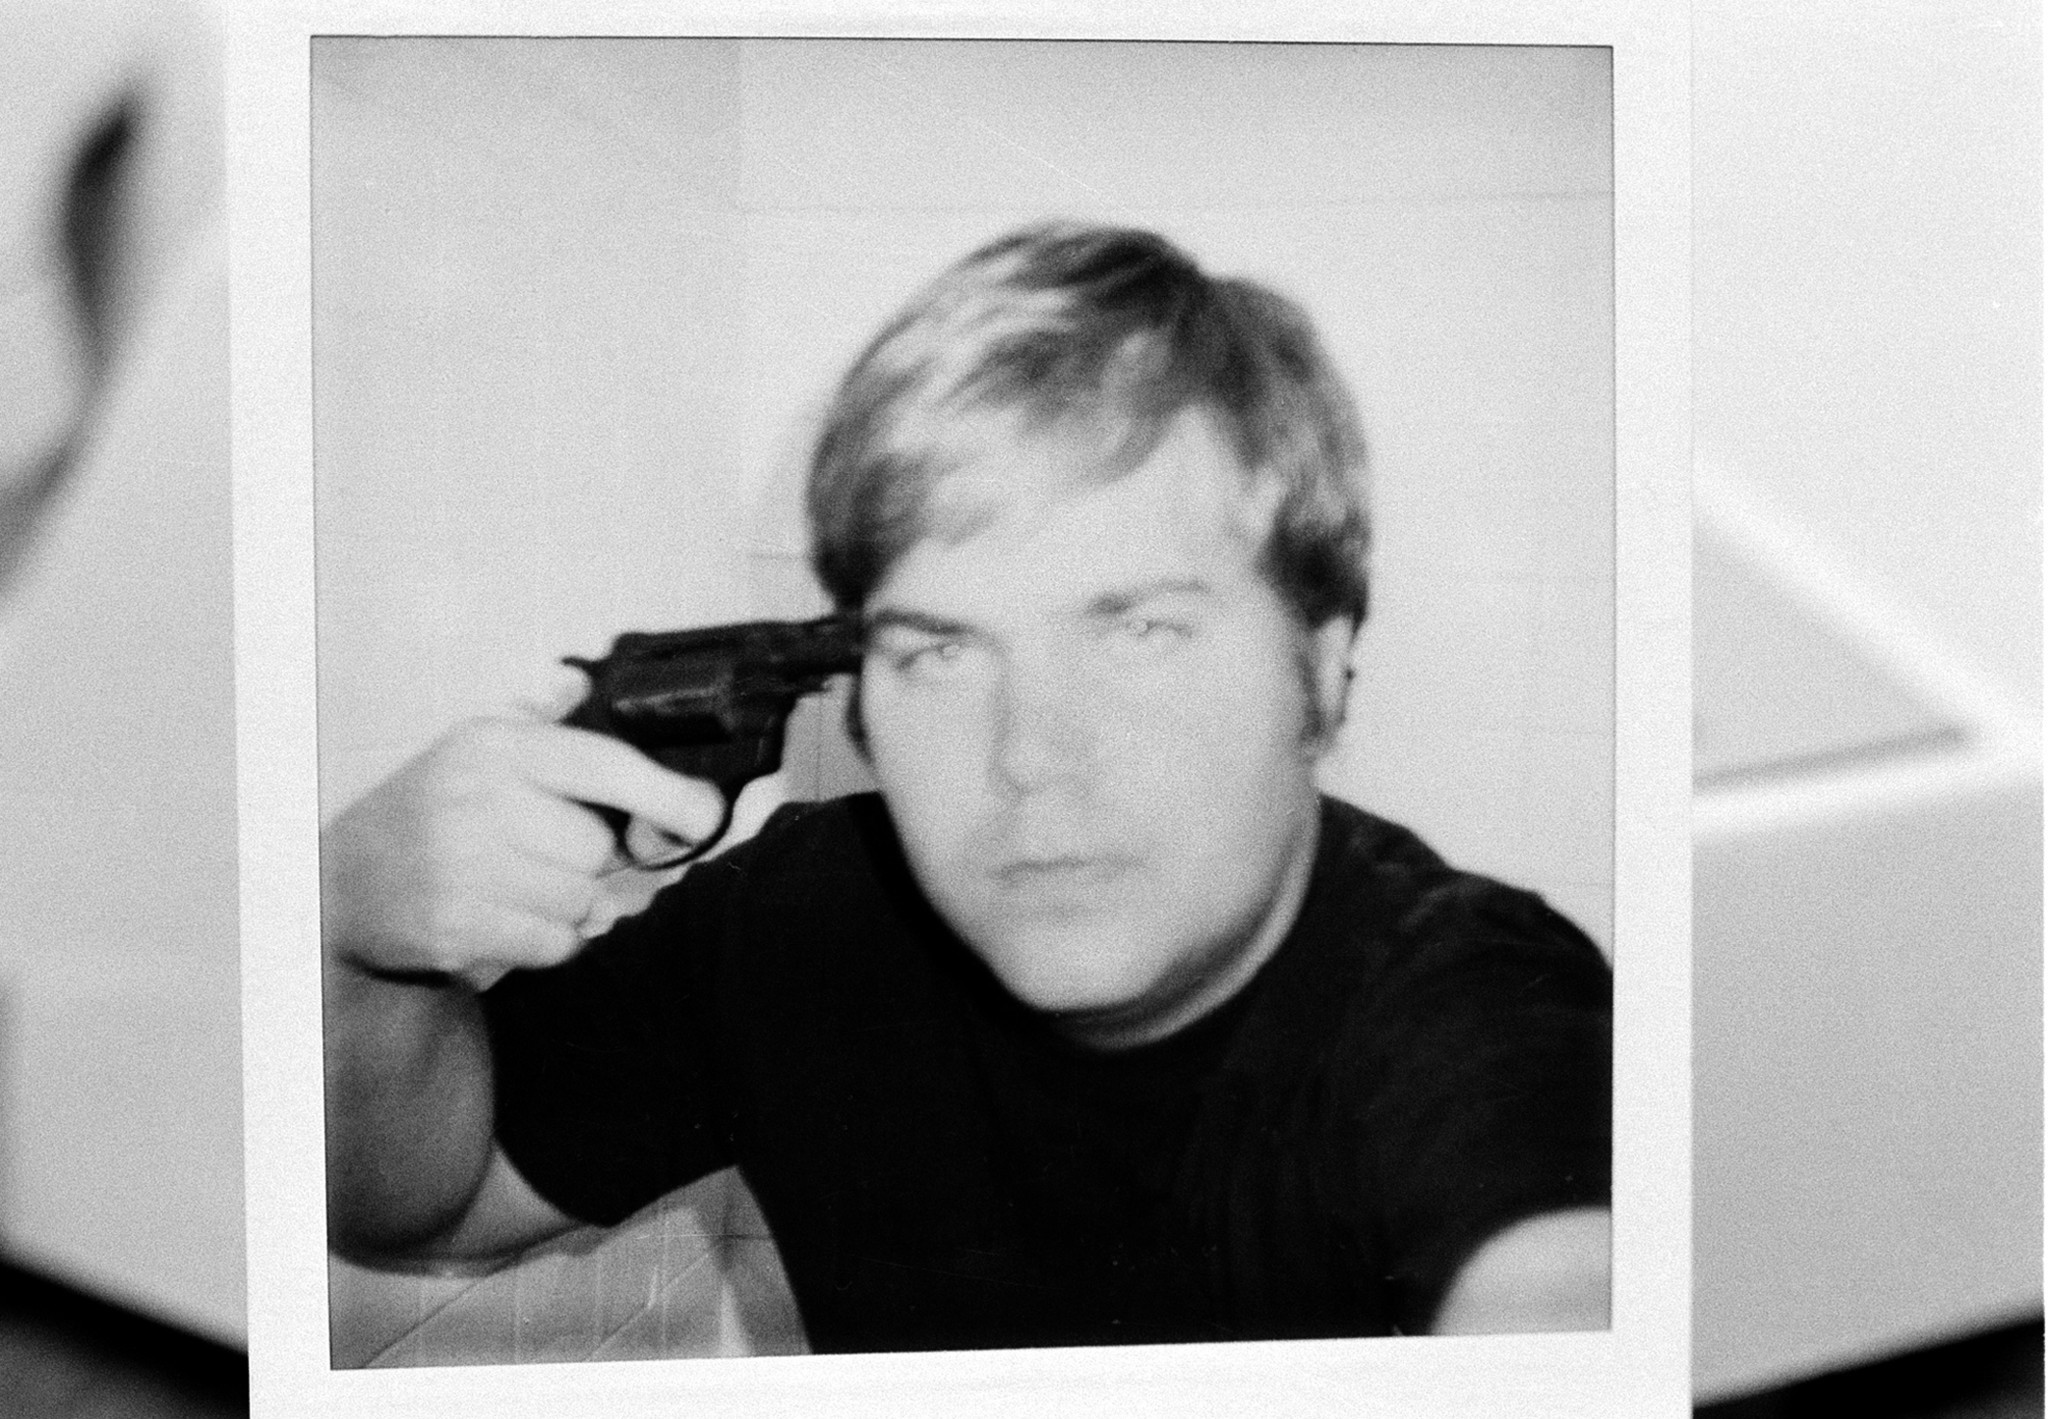 This image of John Hinckley Jr. was used as evidence during his trial.